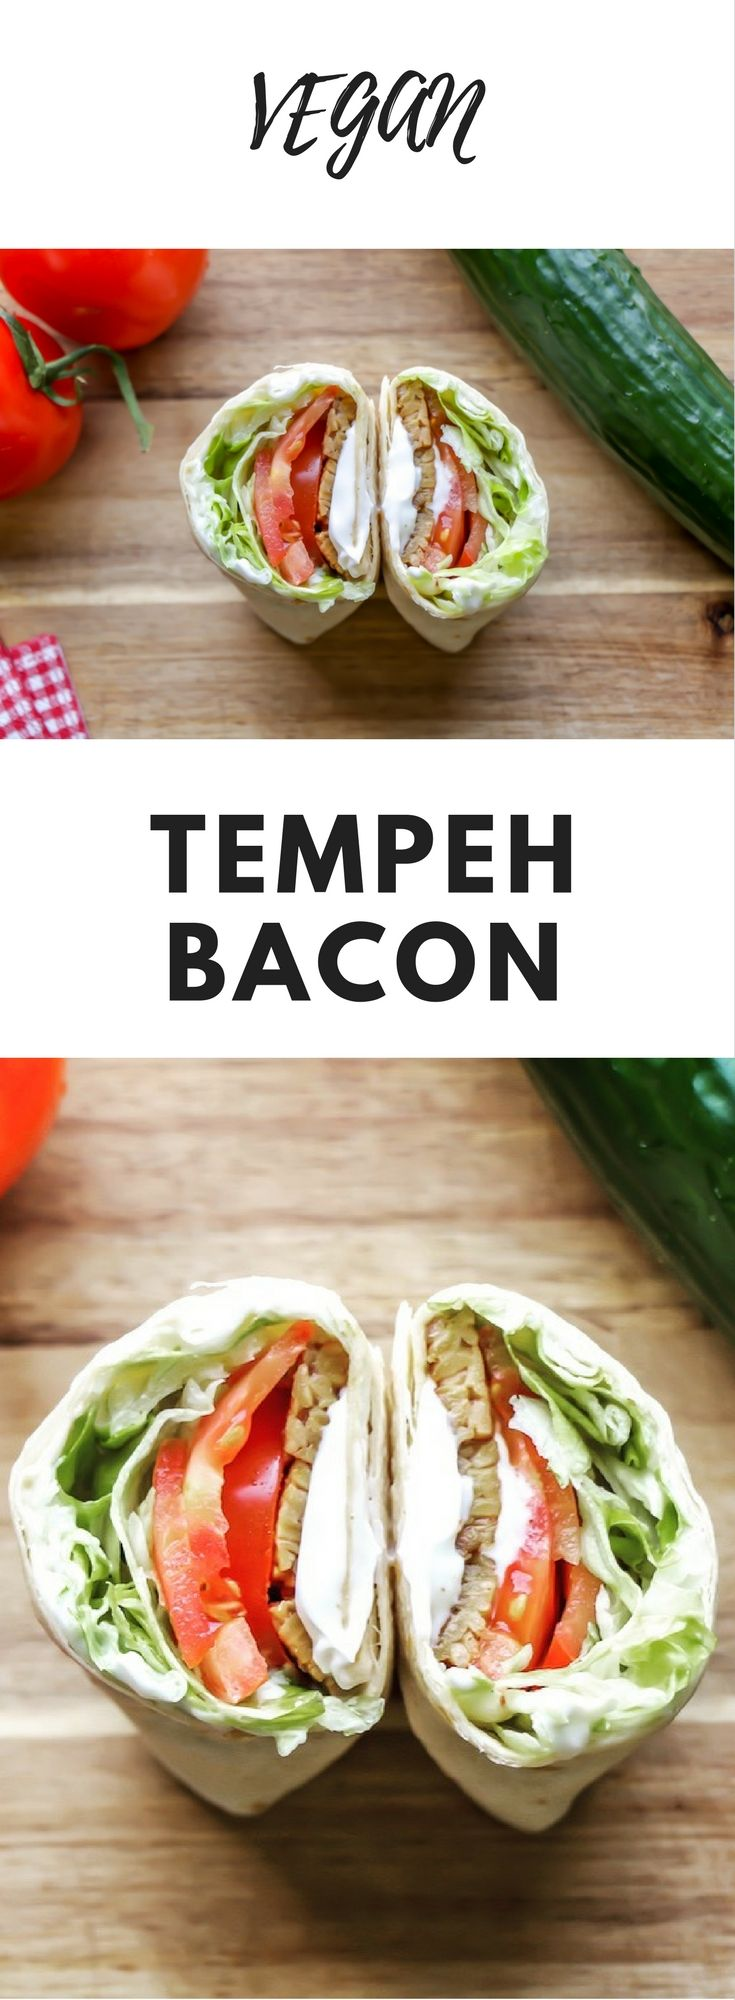 Vegan Tempeh Bacon Wraps - This awesome smokey Vegan Tempeh Bacon wrapped in a whole-wheat tortilla is seriously going to knock your socks off!! And there are so many recipes you can make with the tempeh bacon! Great for a hassle-free lunch! If you like this recipe you may also like my Vegan BLTrecipe.